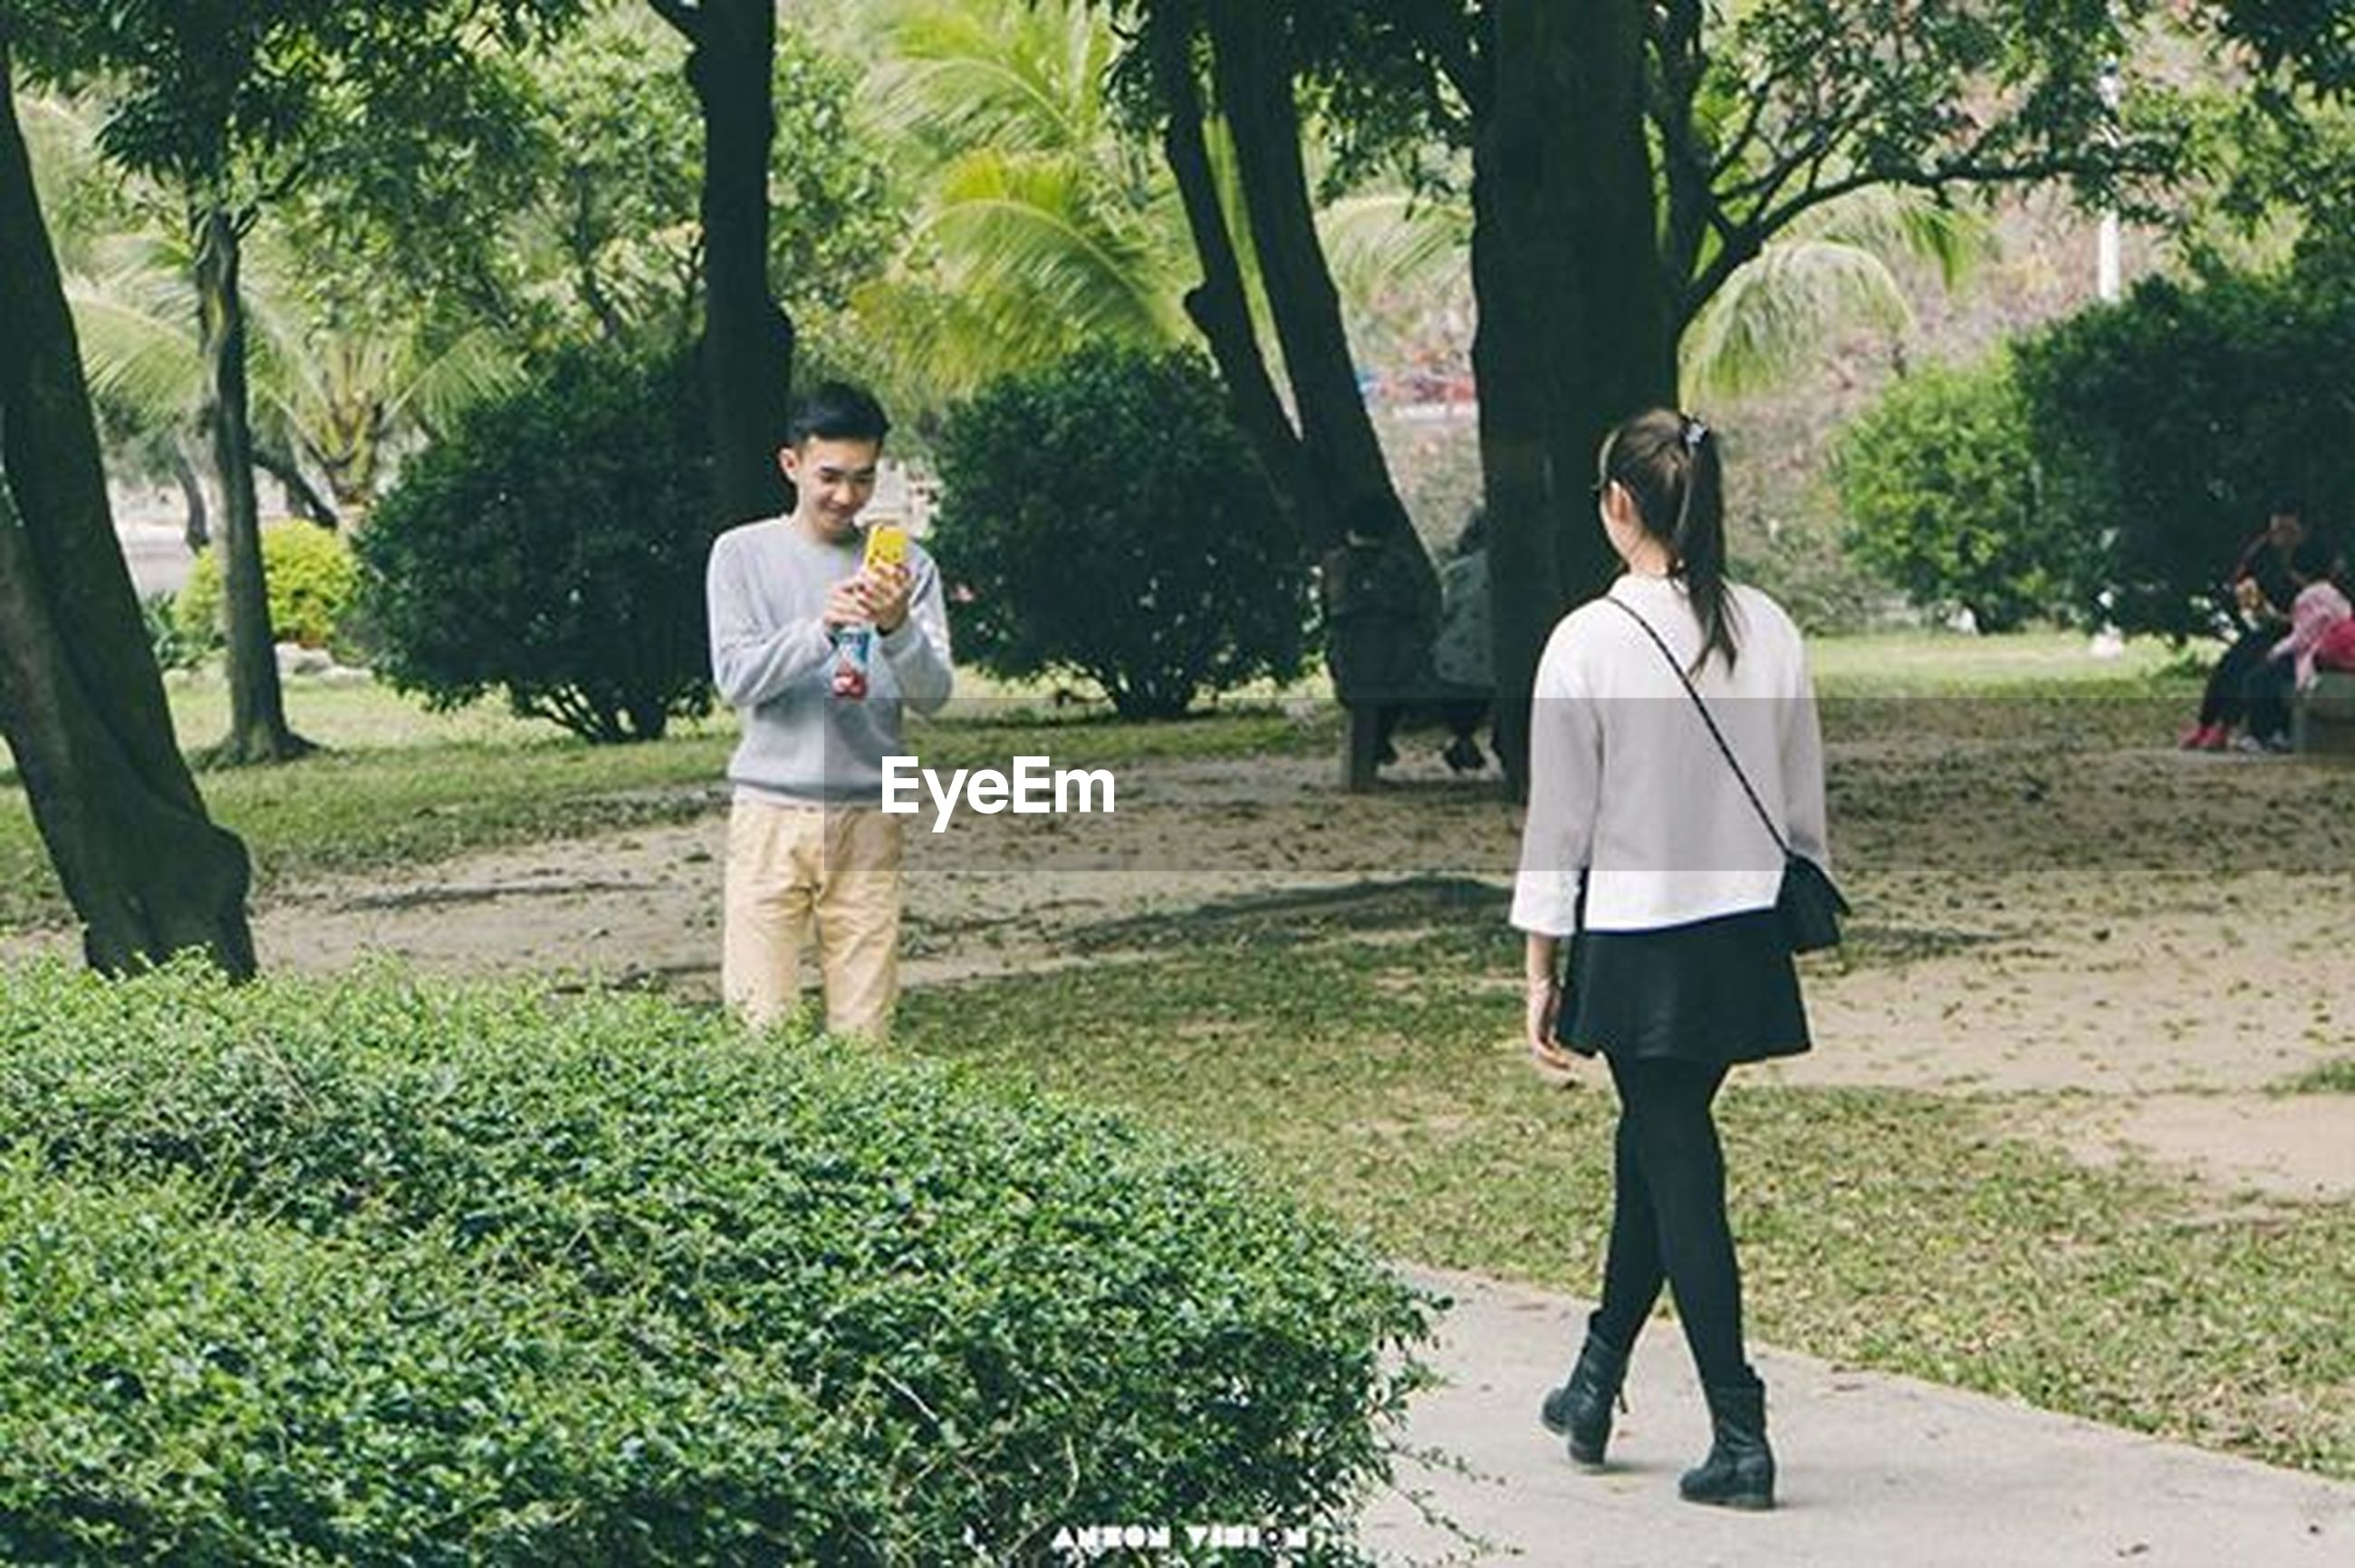 tree, full length, lifestyles, casual clothing, leisure activity, park - man made space, grass, person, rear view, walking, park, growth, young adult, green color, tree trunk, young women, standing